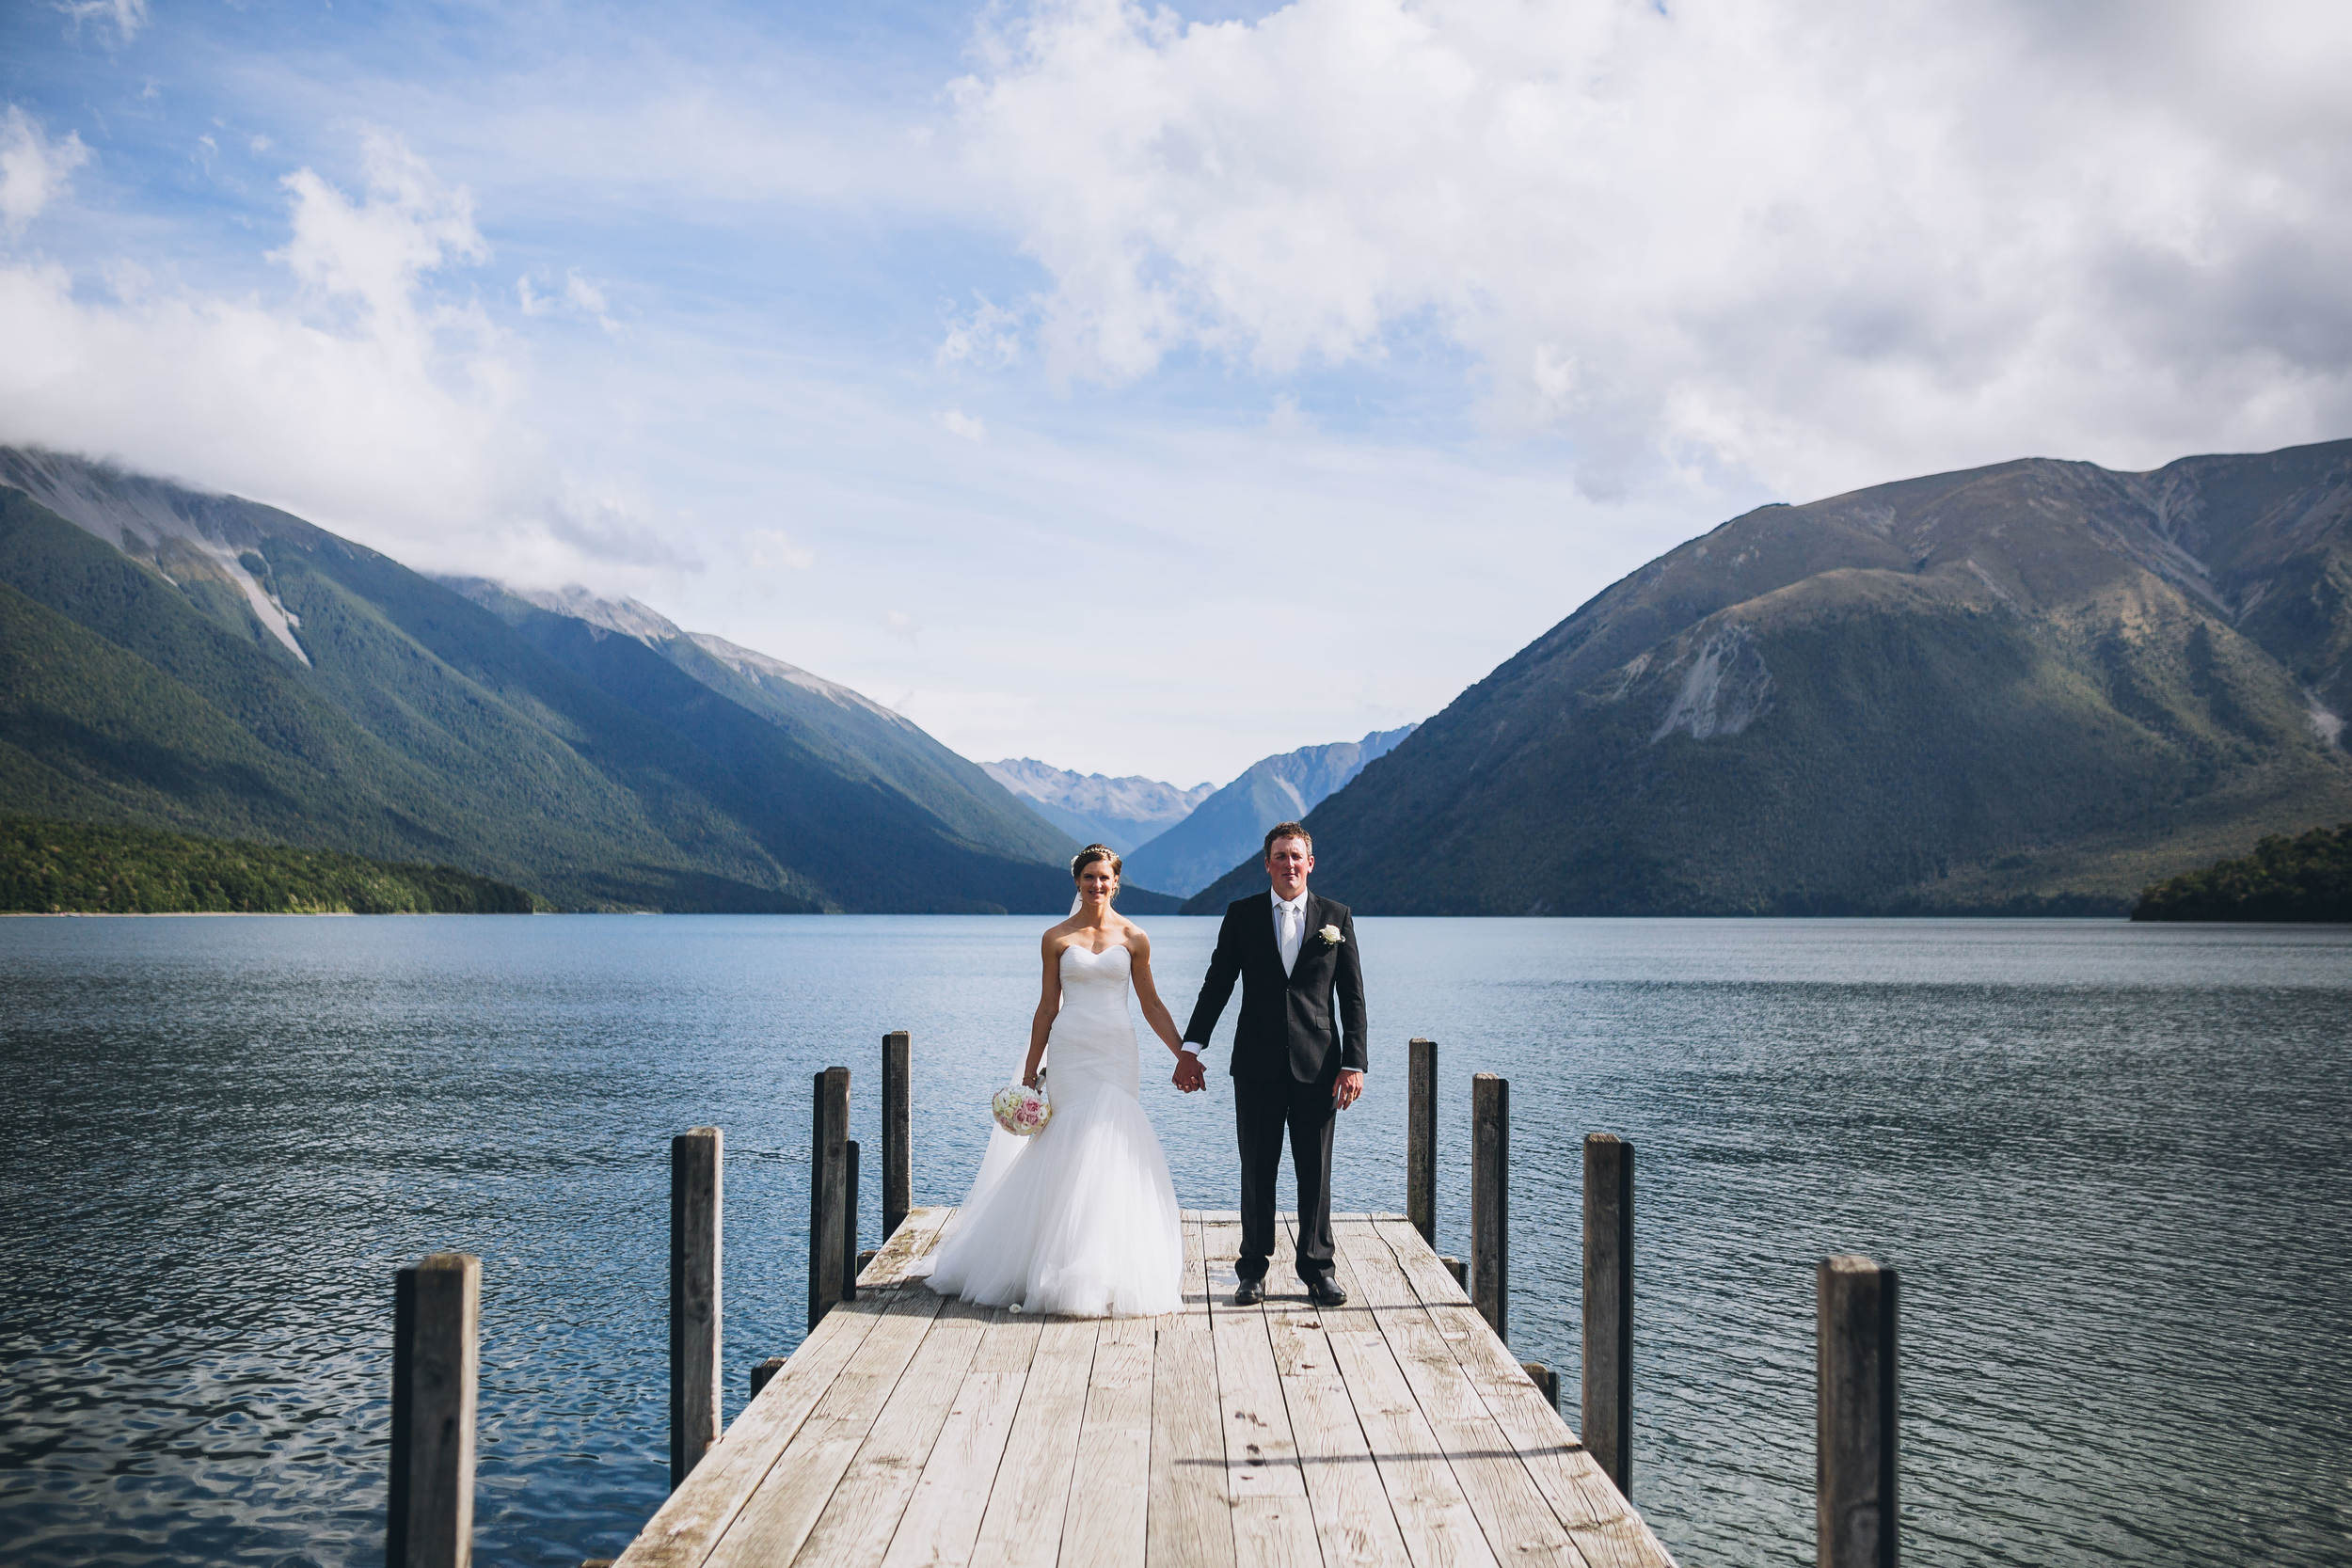 Lake Rotoiti Wedding - St Arnaud Wedding - Nelson Wedding Photography - Nelson Wedding Photographers - The Woods Photography